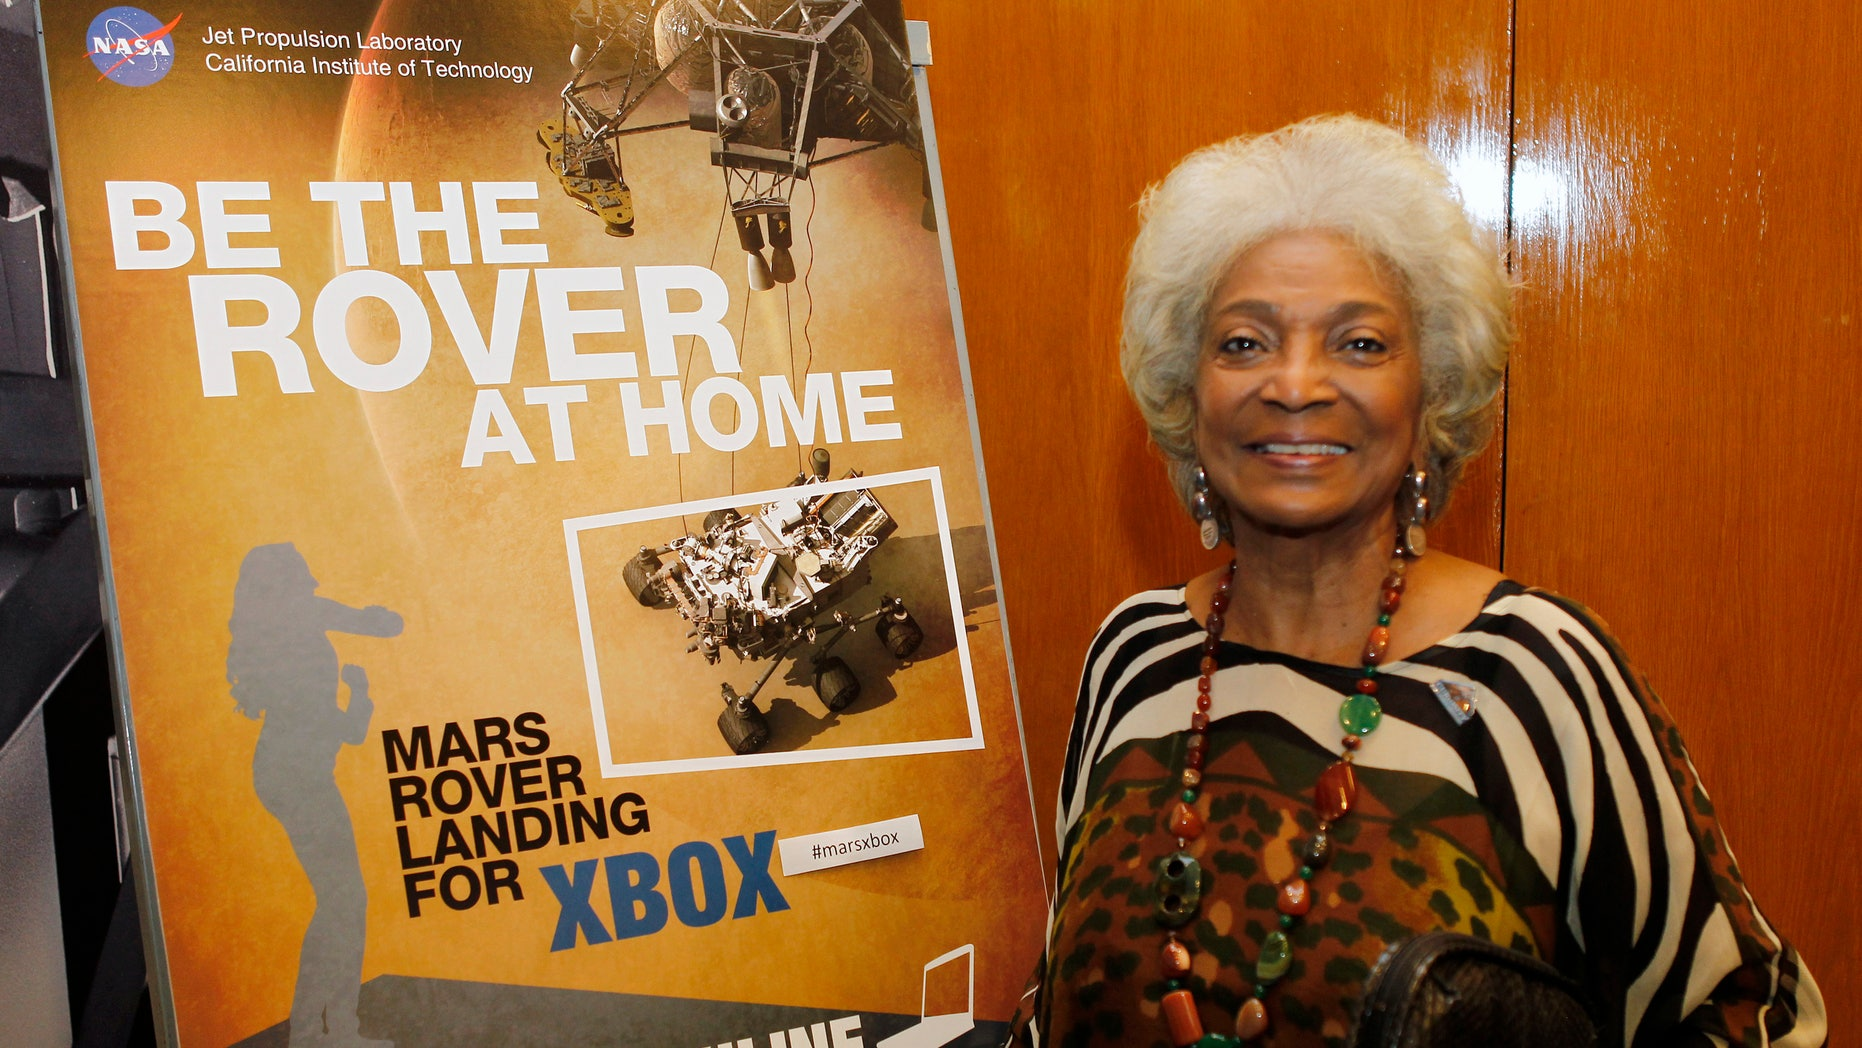 """August 5, 2012. Actress Nichelle Nichols, who played the character Uhura in the original """"Star Trek"""" TV series, poses at NASA's Jet Propulsion Lab in Pasadena, California."""